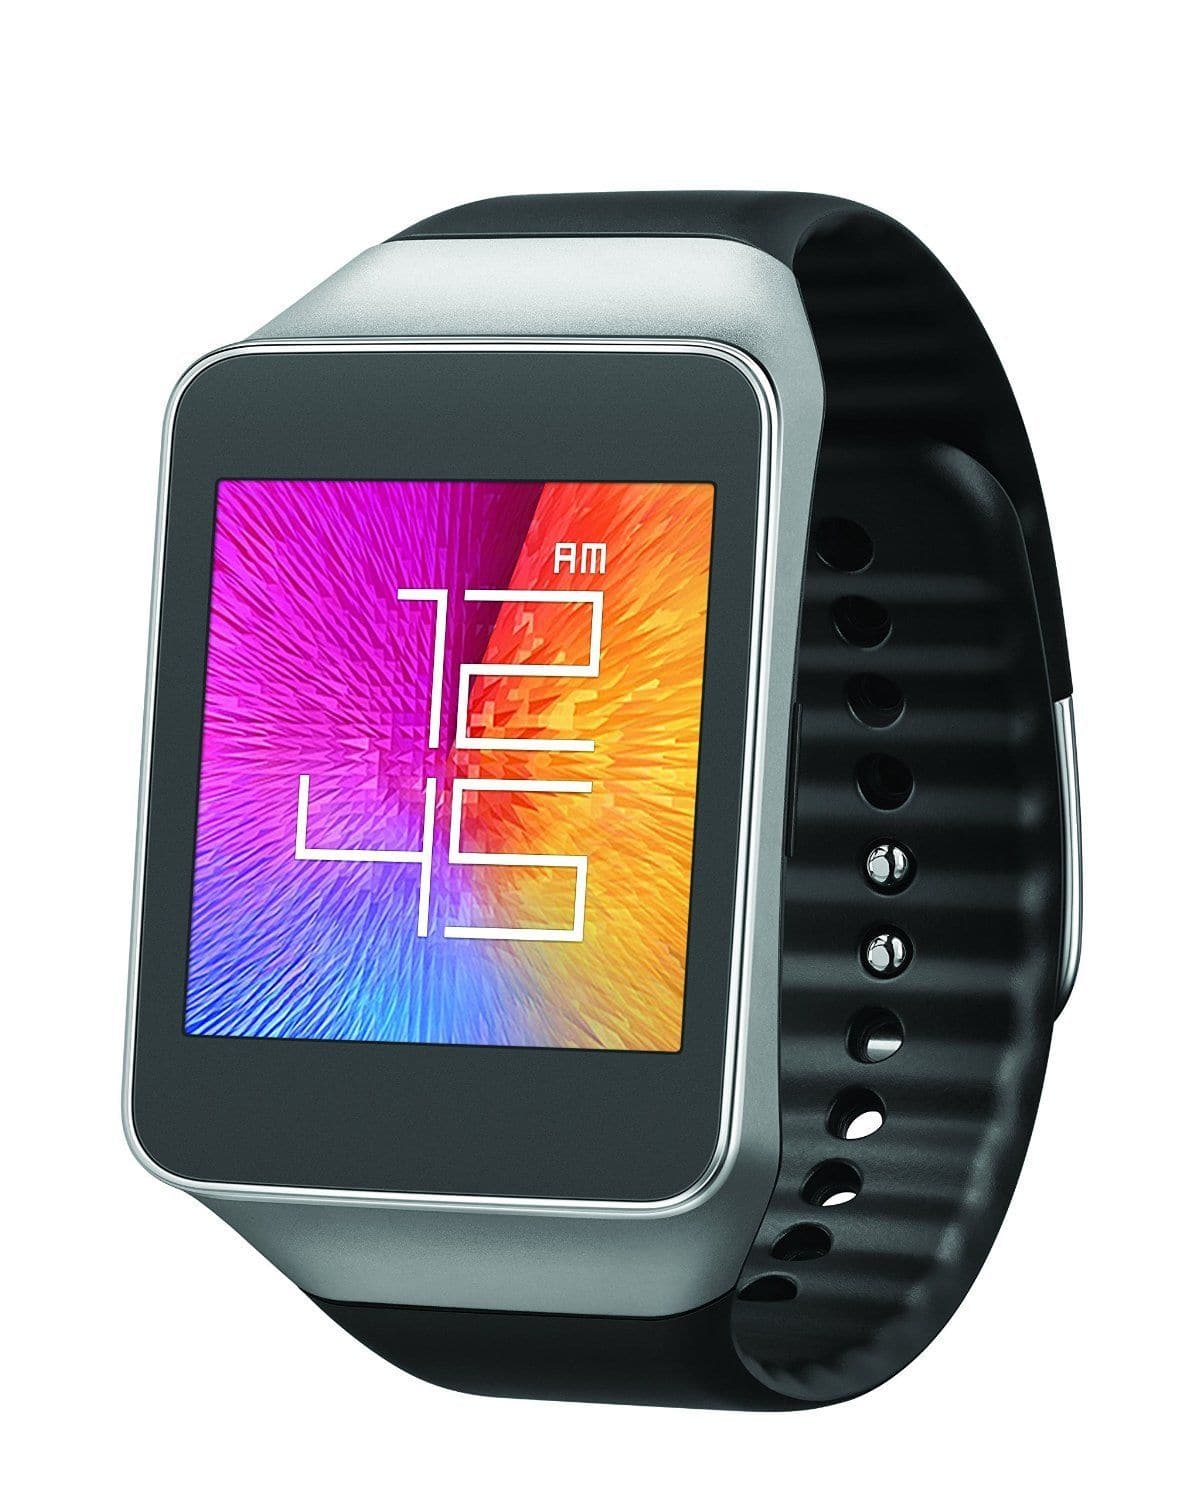 Samsung Galaxy Gear Smart Watch Live Android SM-R382 Black Waterproof Bluetooth $79.99 + Free shipping